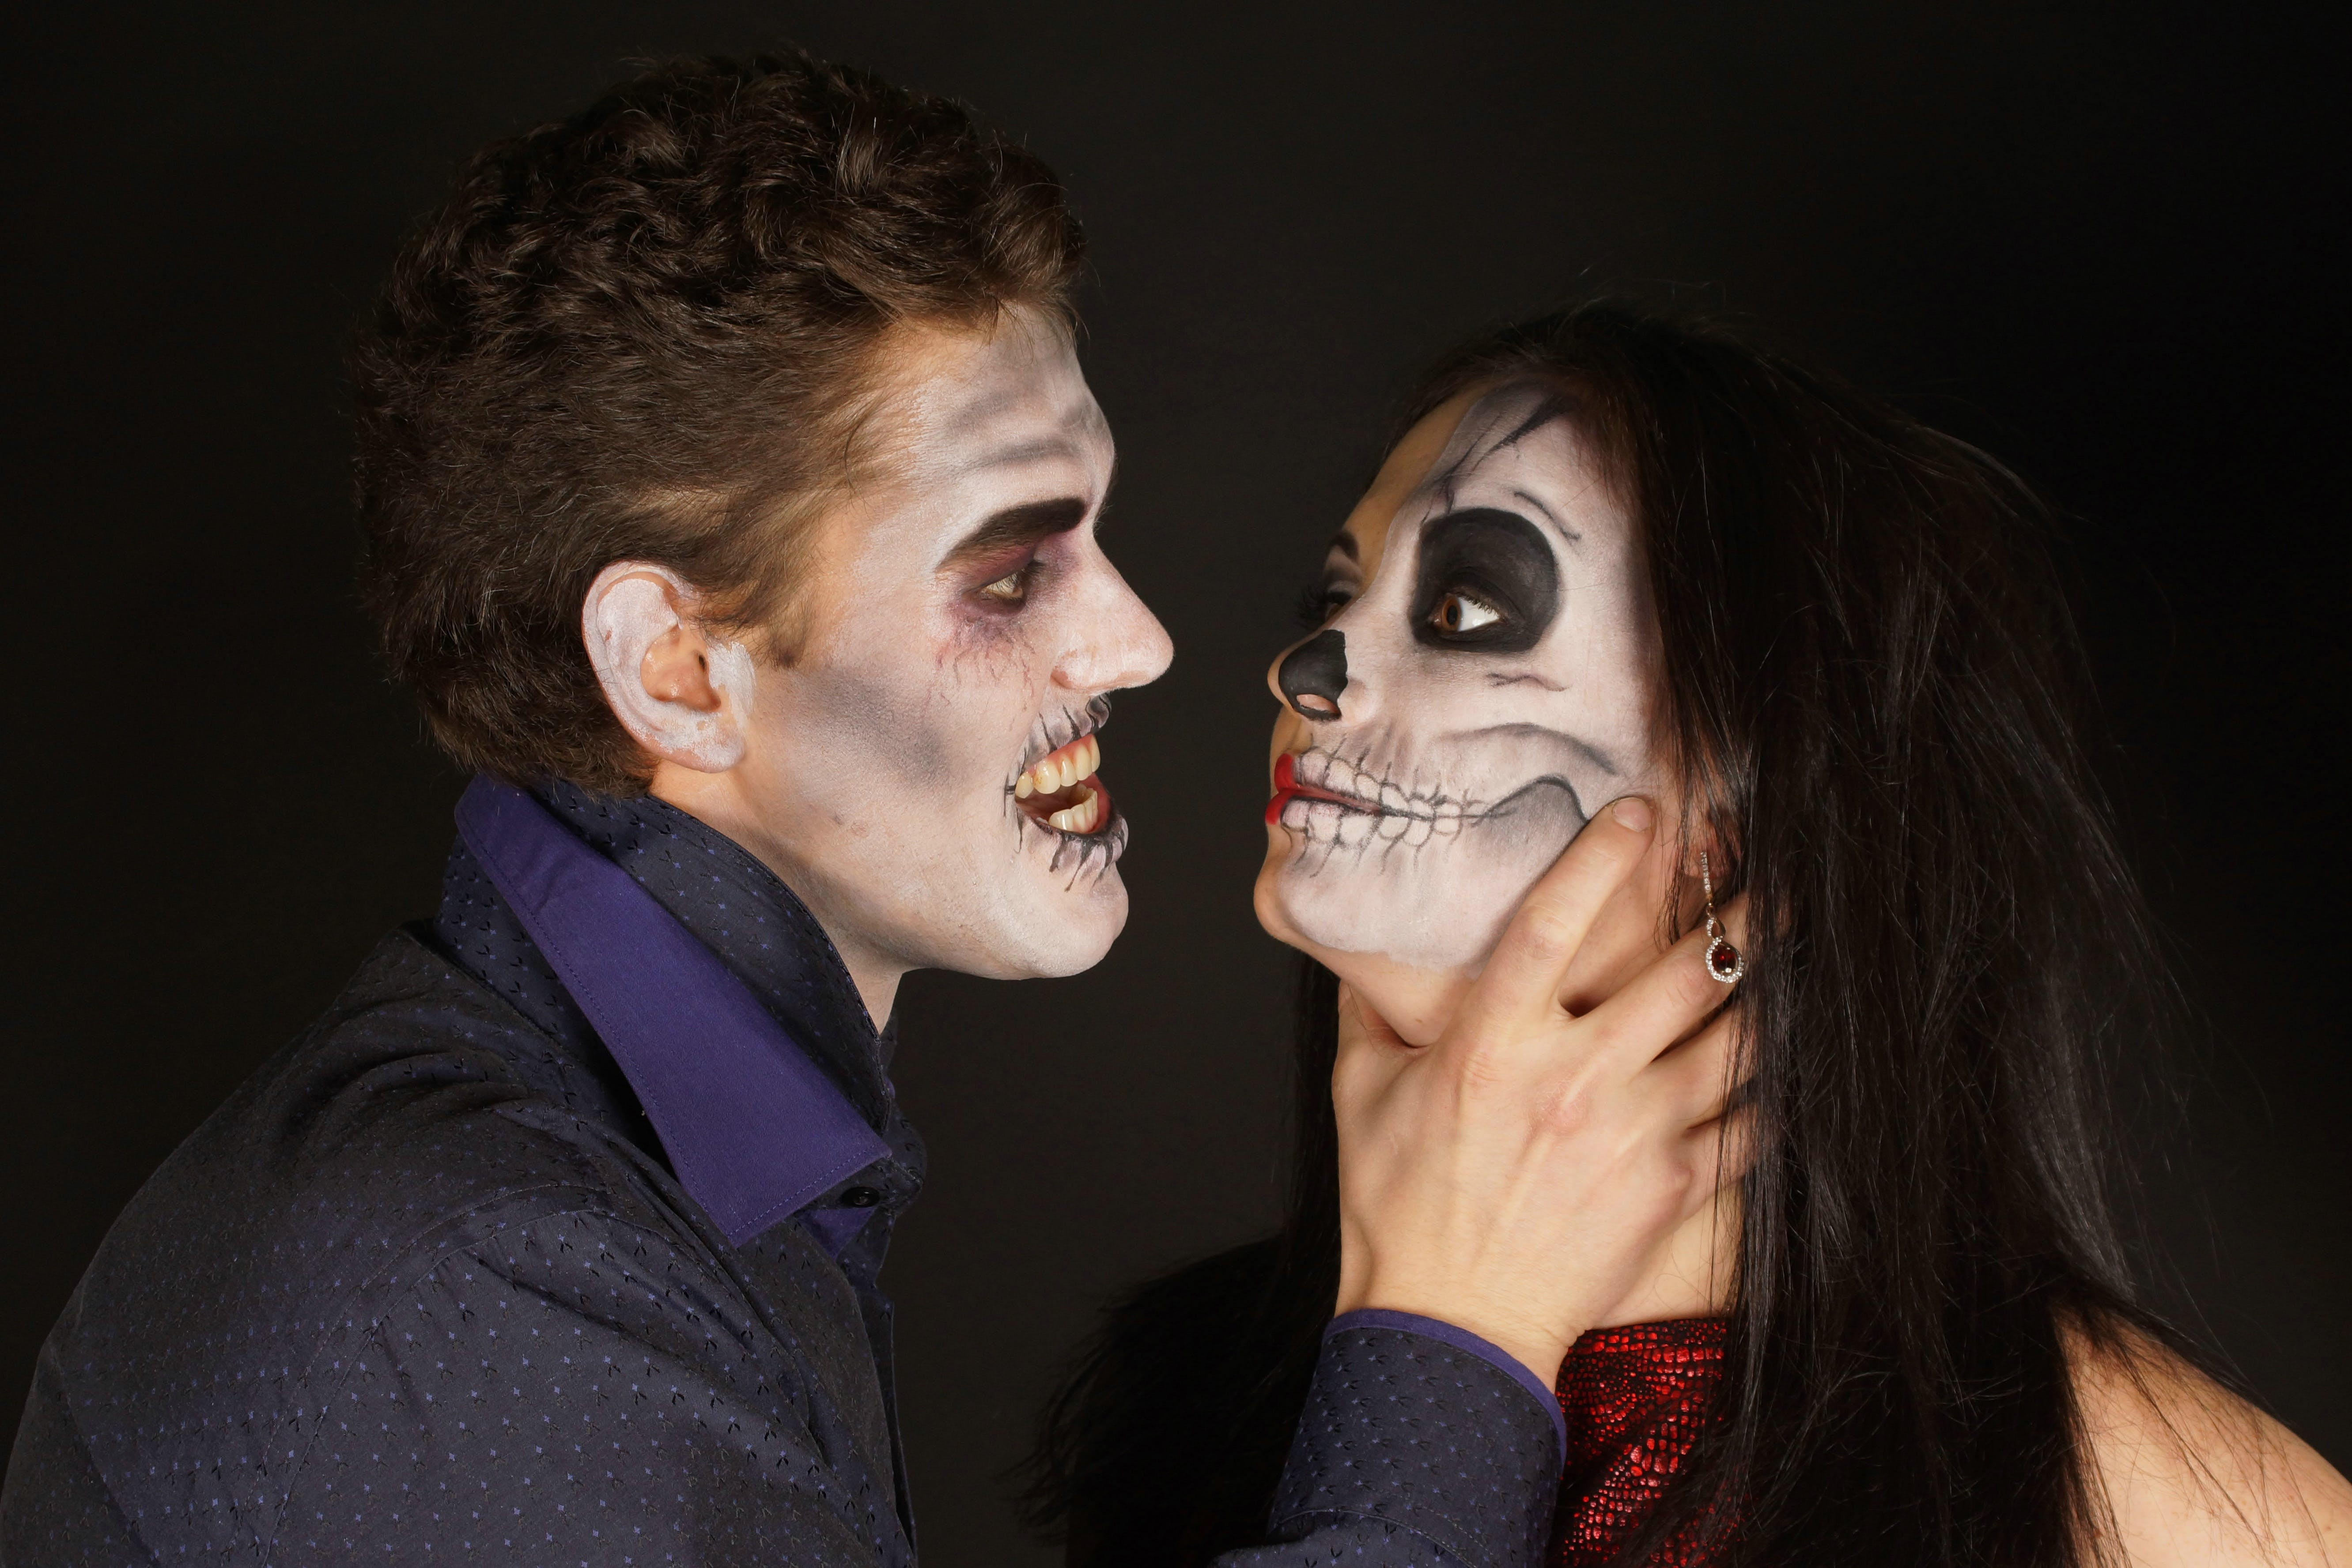 Man With Halloween Skeleton Makeup Choking a Woman With Skeleton Makeup